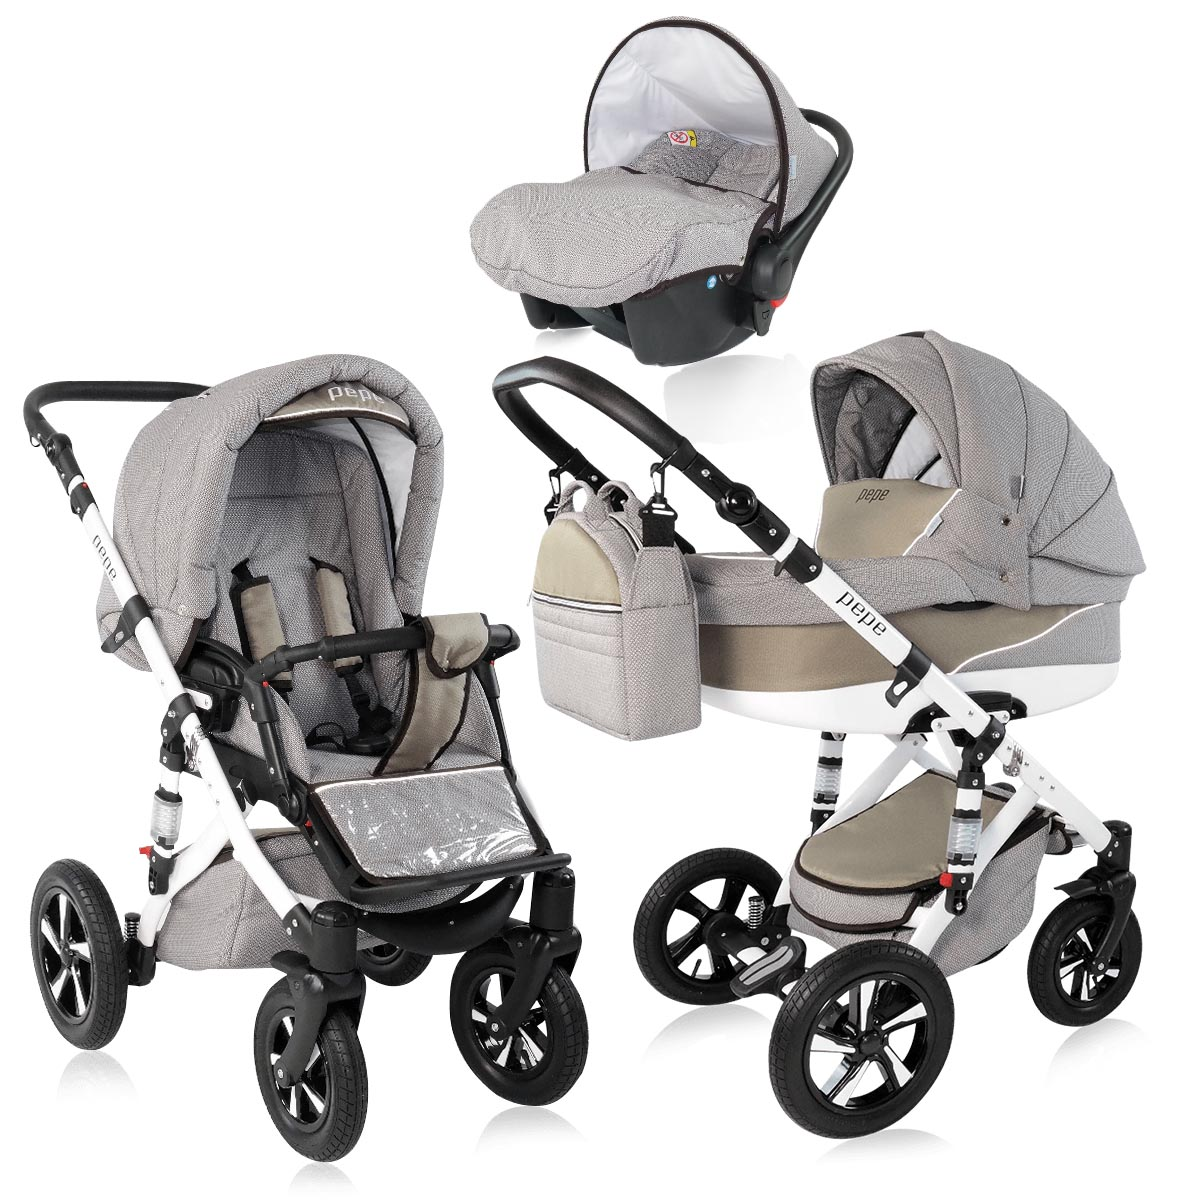 pepe kombi kinderwagen 3 in 1 babyschale autositz buggy. Black Bedroom Furniture Sets. Home Design Ideas